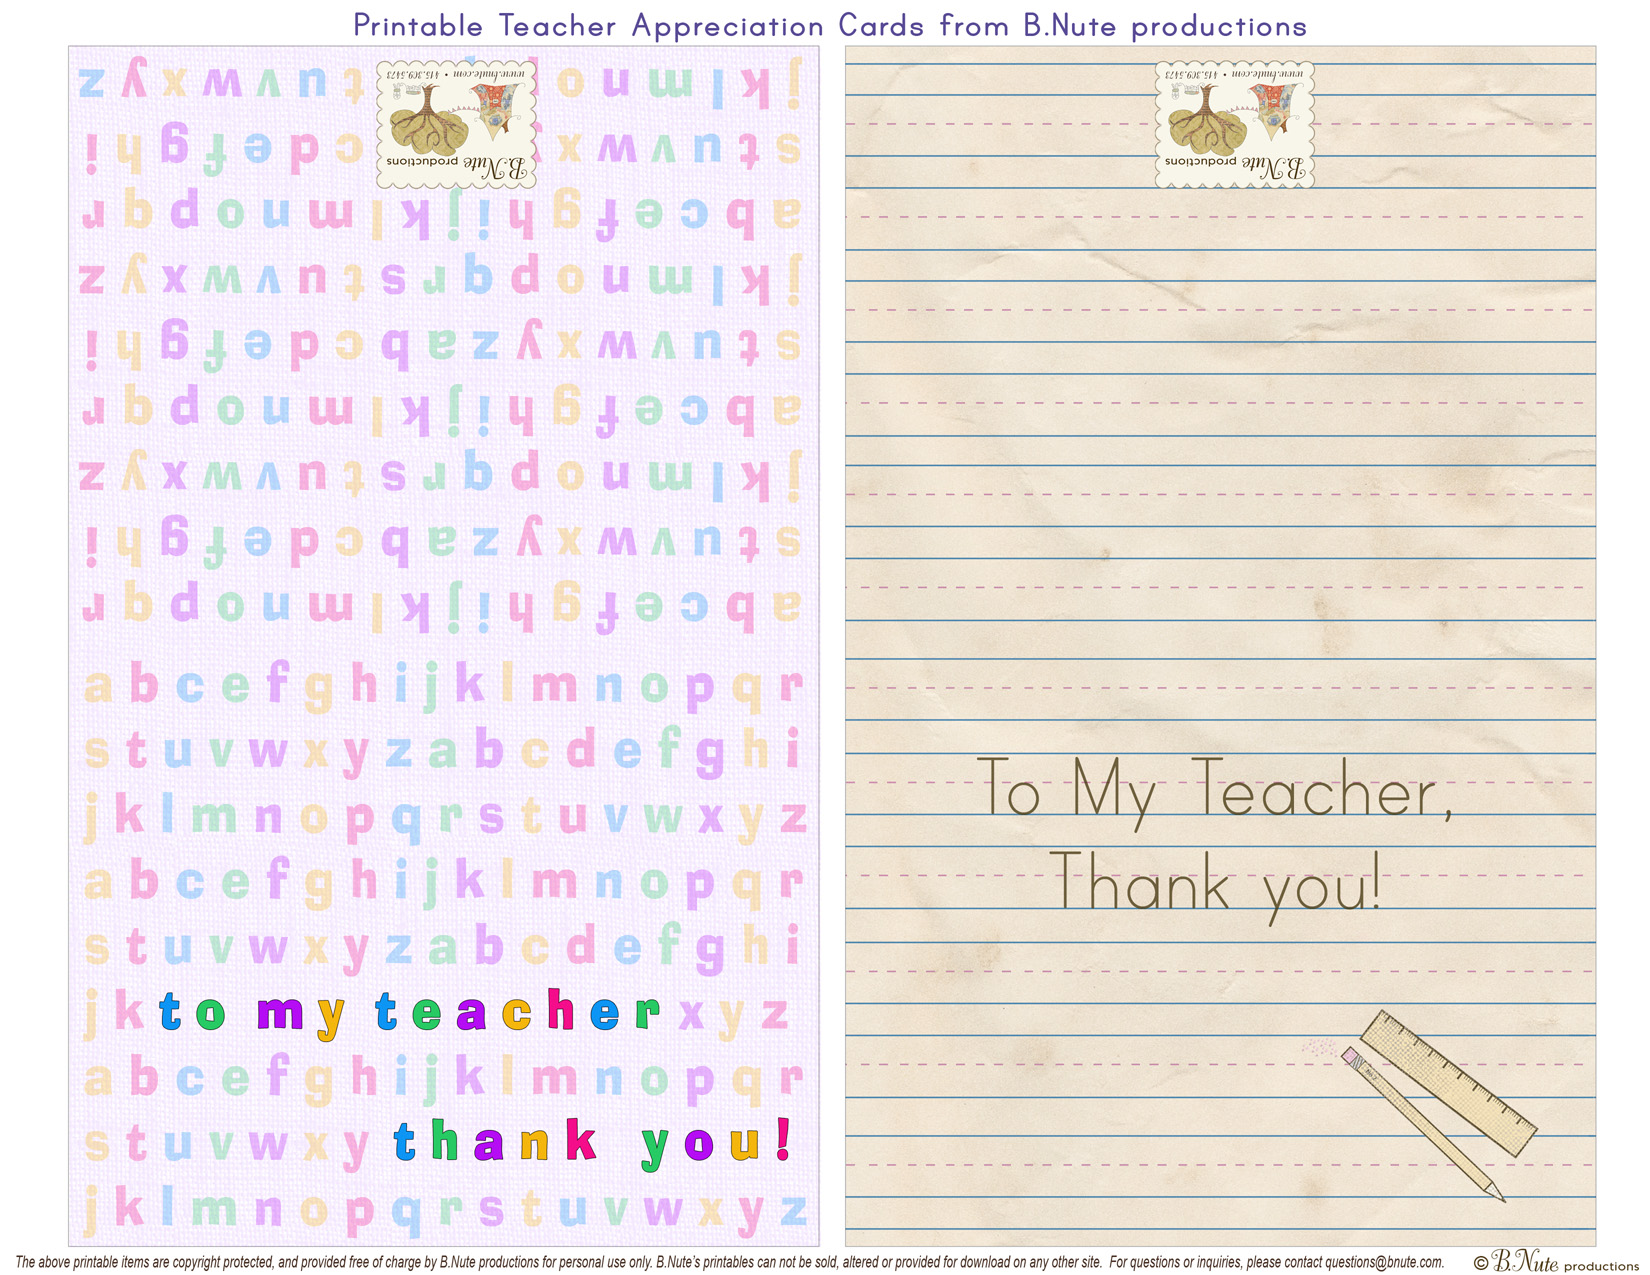 Free Printable Teacher Appreciation Folded Cards by B.Nute productions: bnute.blogspot.com/2011_04_01_archive.html